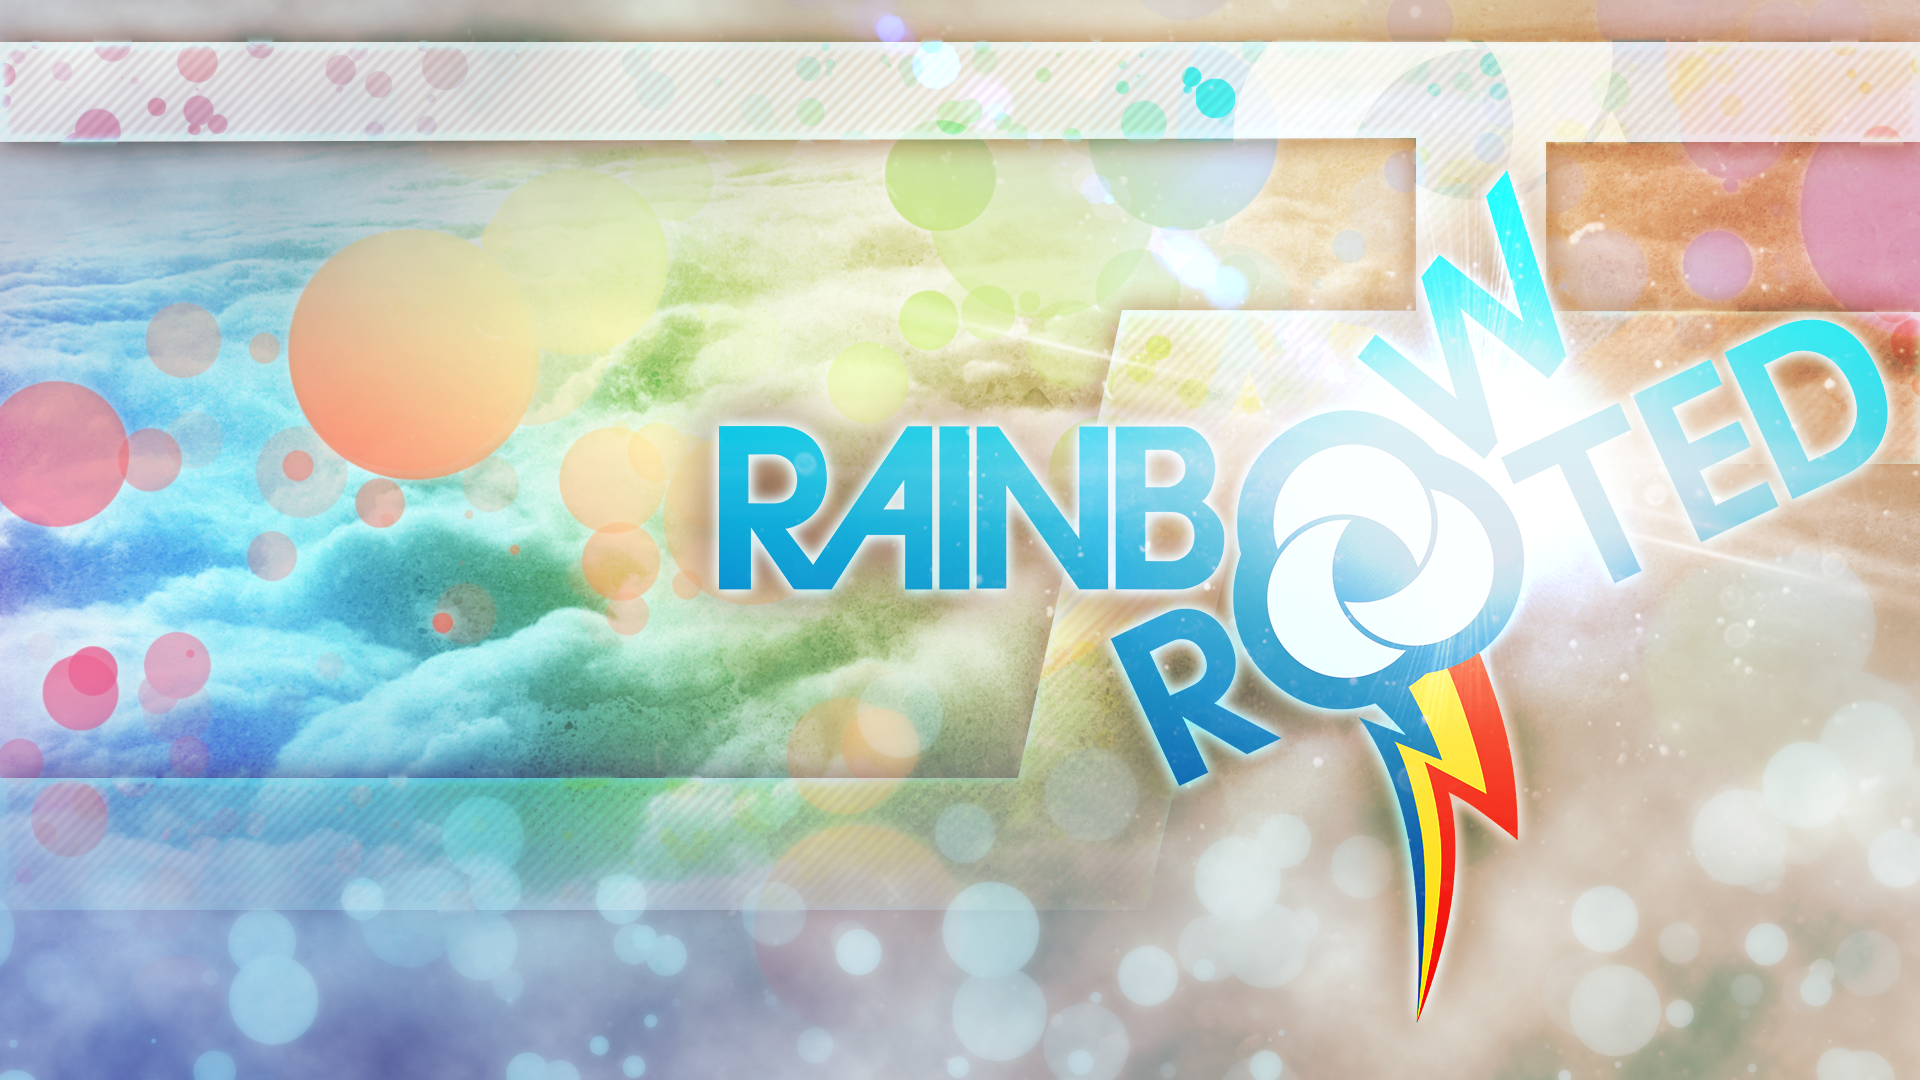 Rainbow and Rooted No Text Style by KibbieTheGreat and WMill